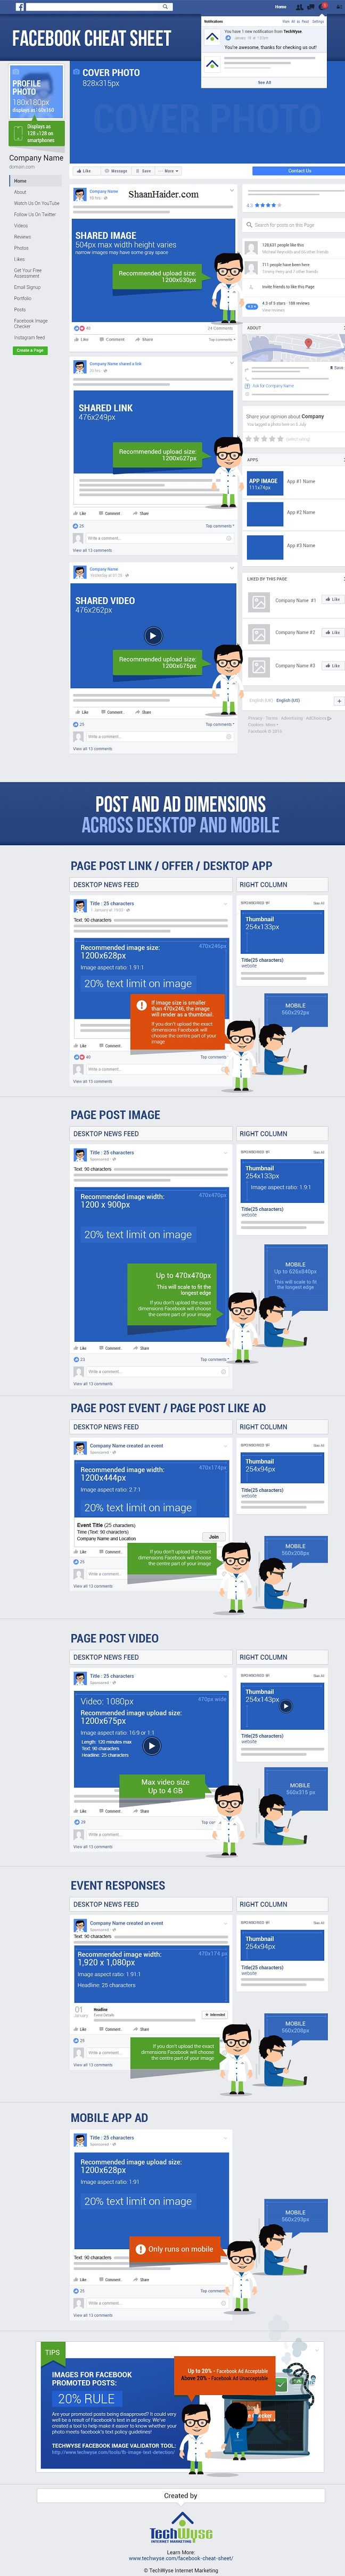 Facebook Image Size and Dimensions Cheat Sheet for 2017 (Infographic) - www.ShaanHaider.com